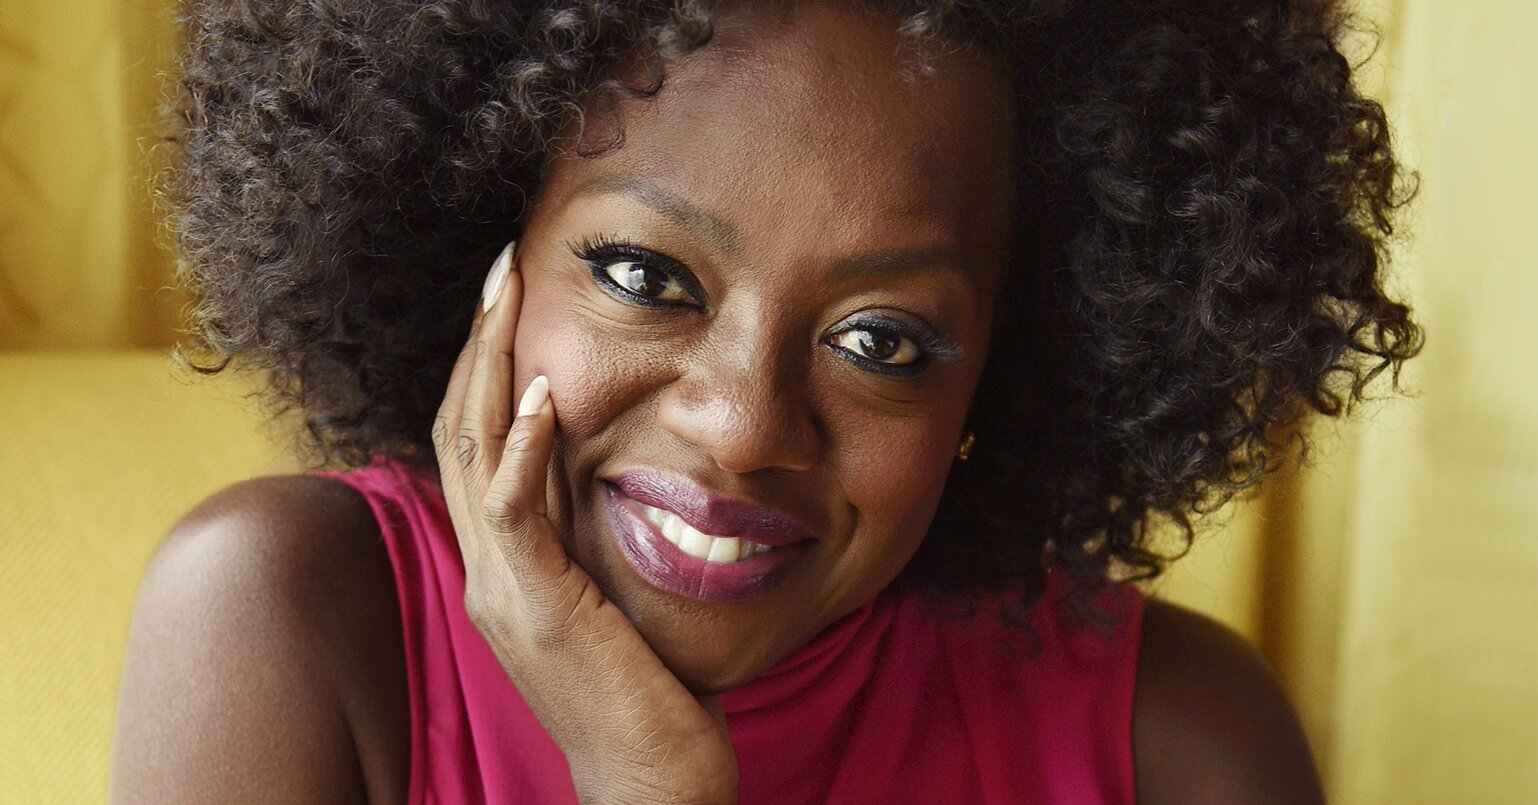 Viola Davis Wants to Help Food-Poor Kids: 'Growing Up With Hunger Was My Biggest Source of Shame'